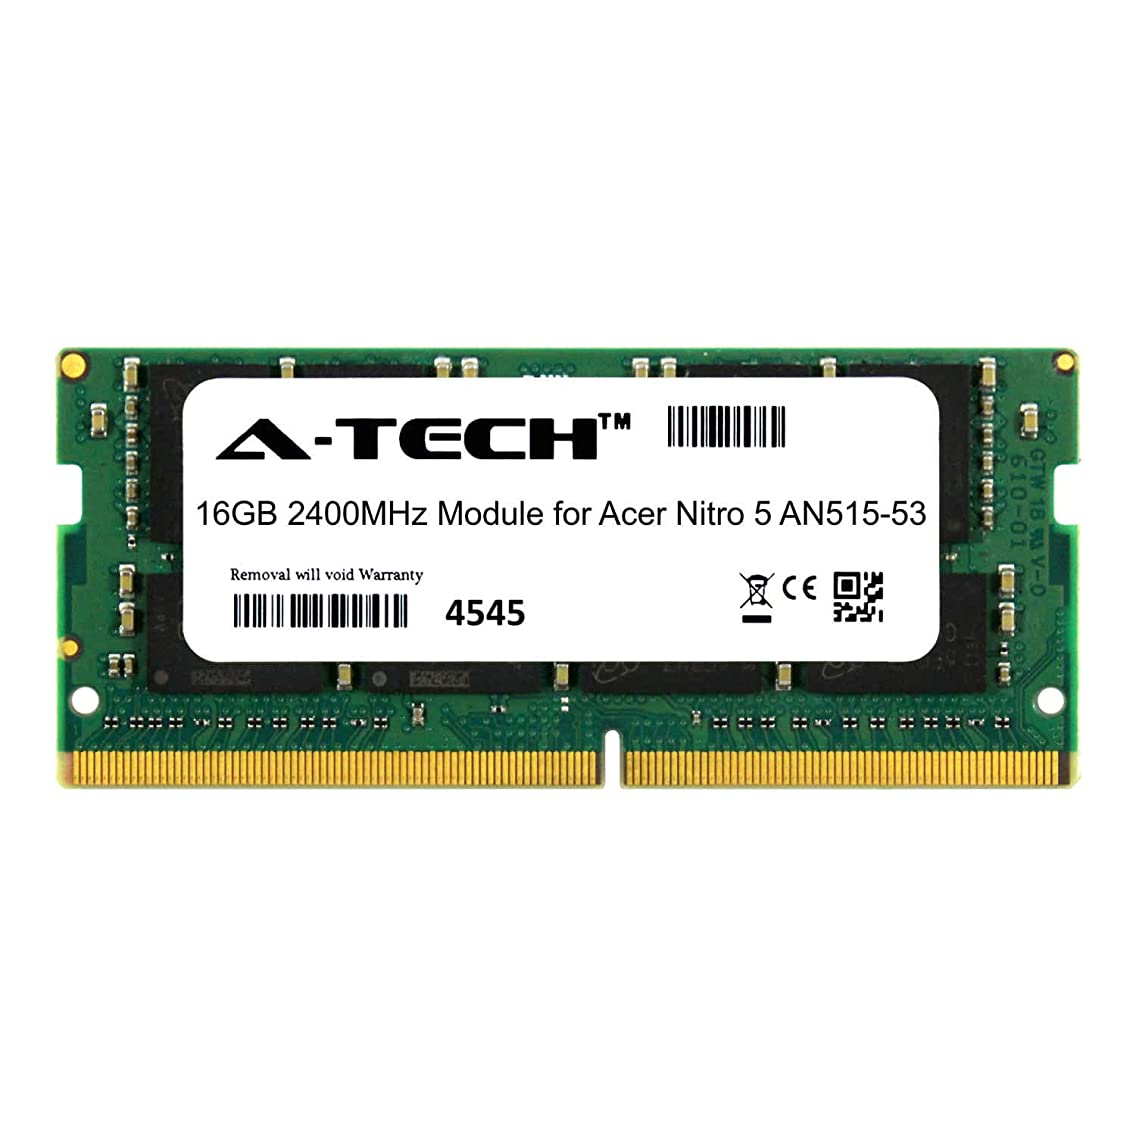 A-Tech 16GB Module for Acer Nitro 5 AN515-53 Laptop & Notebook Compatible DDR4 2400Mhz Memory Ram (ATMS279639A25831X1)